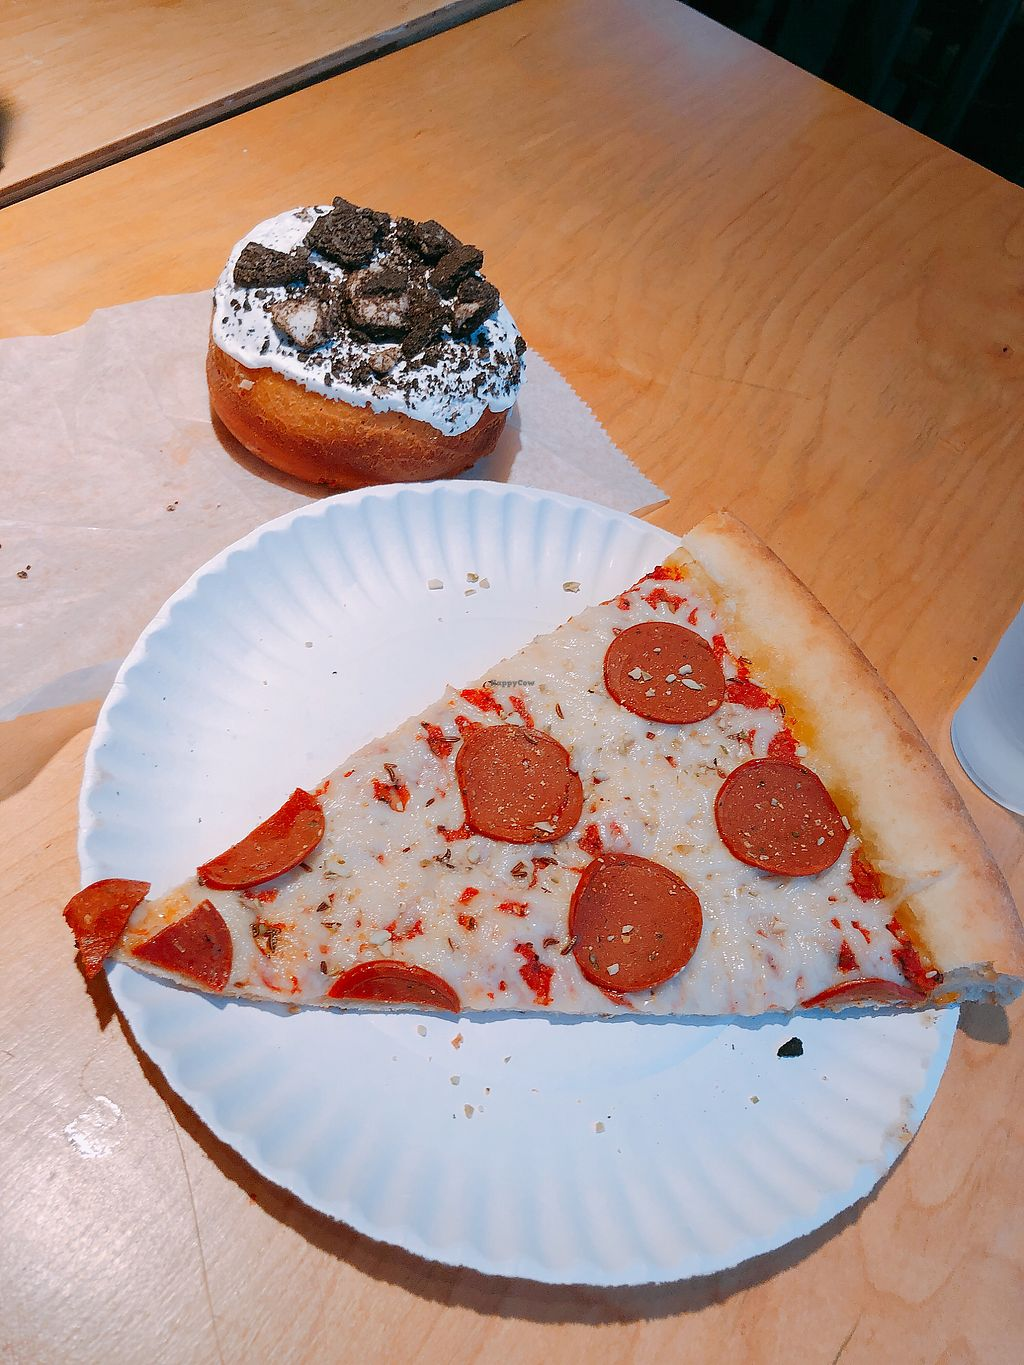 "Photo of Apiecalypse Now Pizza and Snack Bar  by <a href=""/members/profile/janitajasmin"">janitajasmin</a> <br/>""Pepperoni"" pizza and a cookies n cream donut <br/> March 13, 2018  - <a href='/contact/abuse/image/58573/370135'>Report</a>"